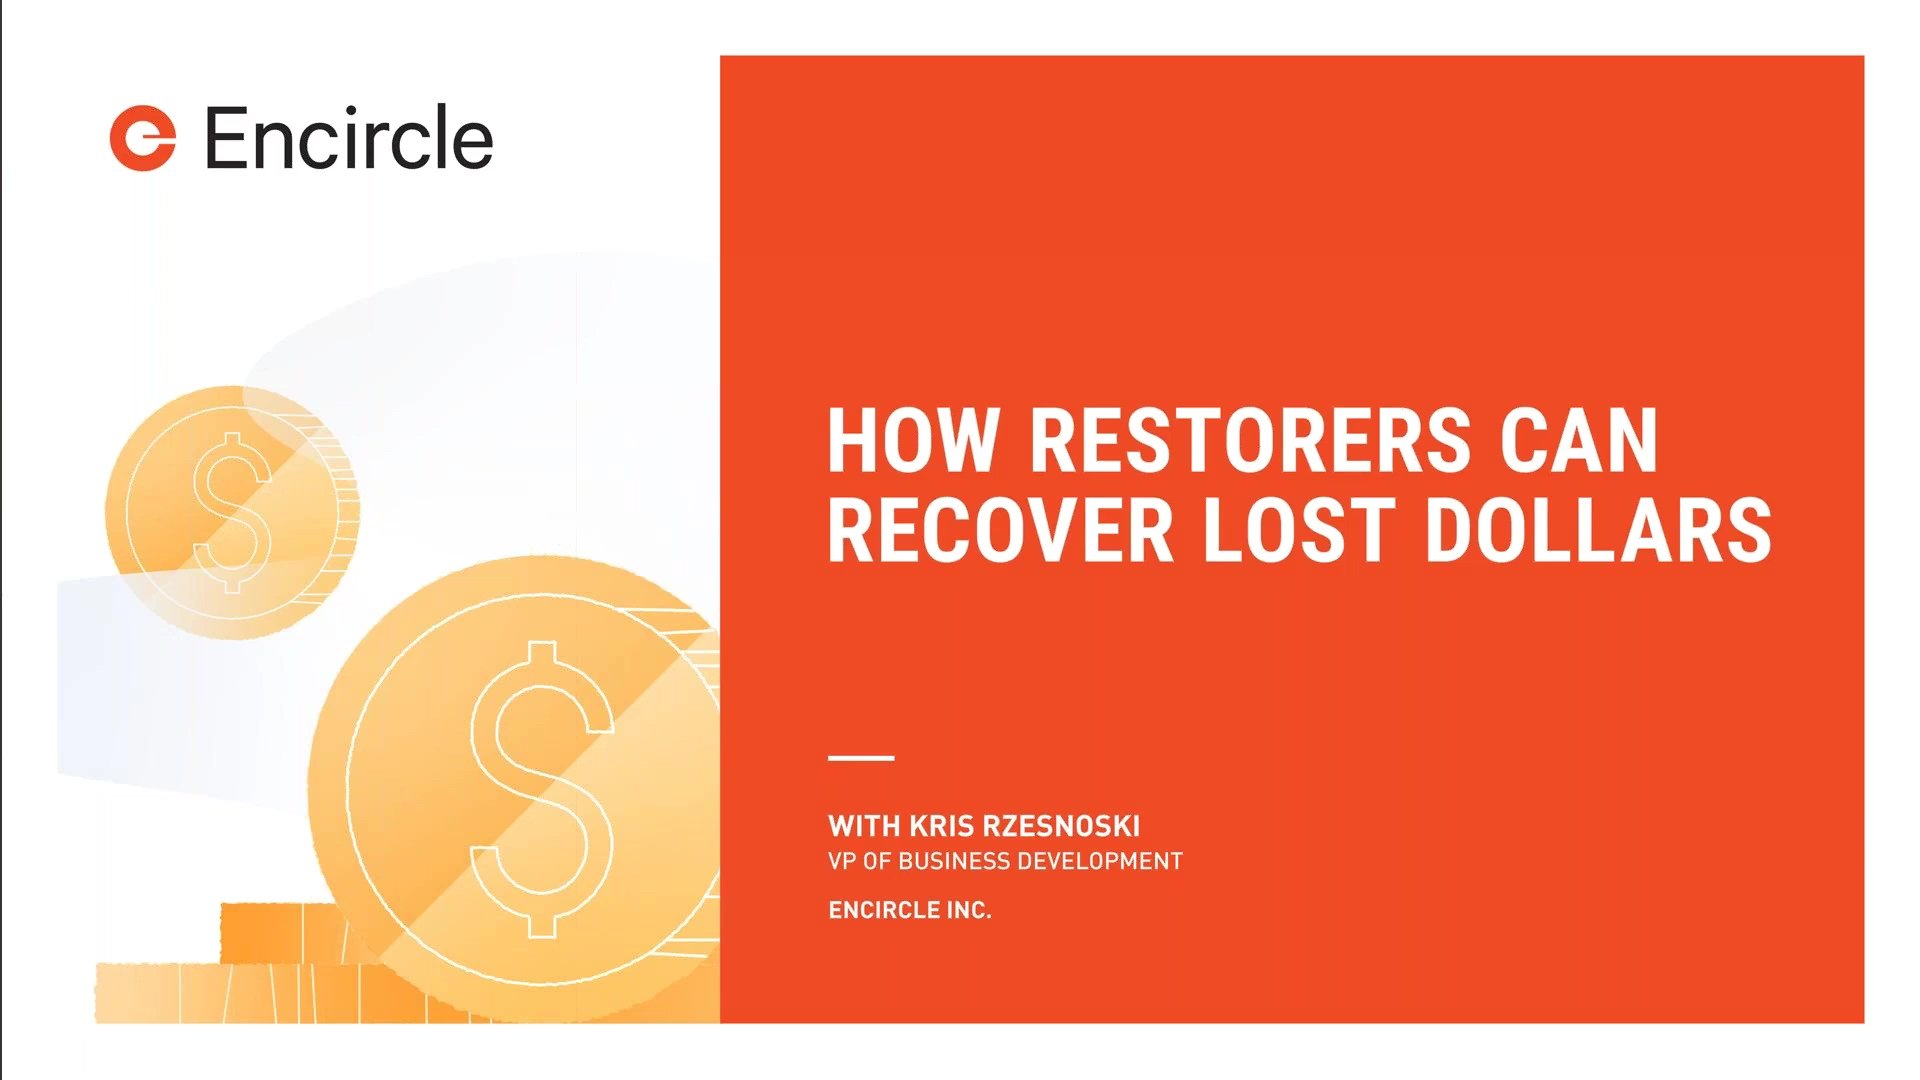 How Restorers Can Recover Lost Dollars